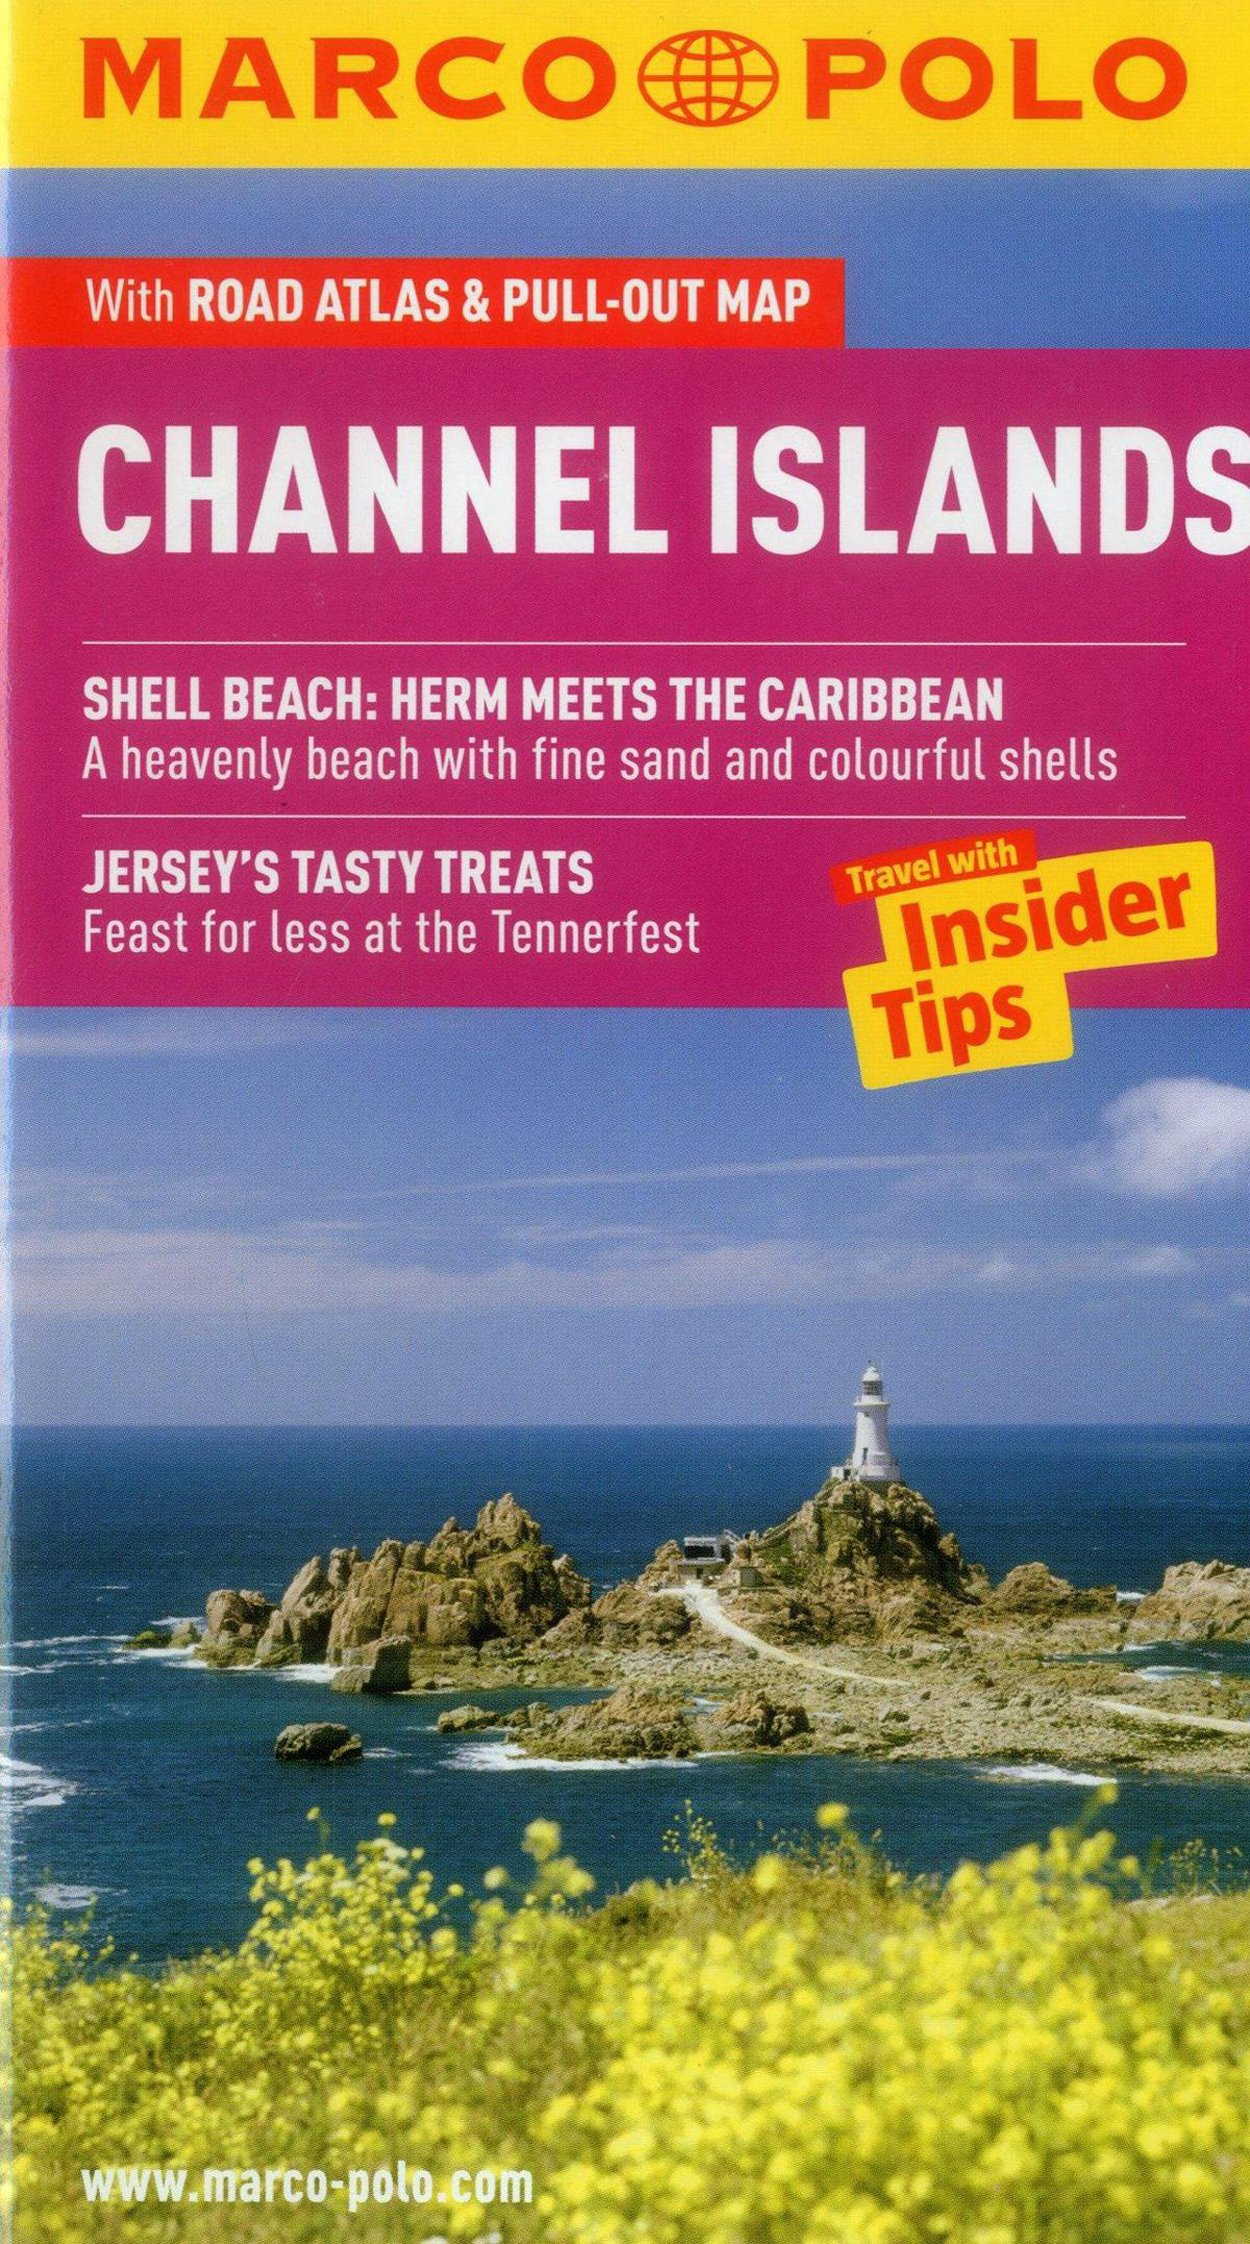 Marco Polo Channel Islands: The Travel Guide With Insider Tips , Road Atlas & Pull-out Map